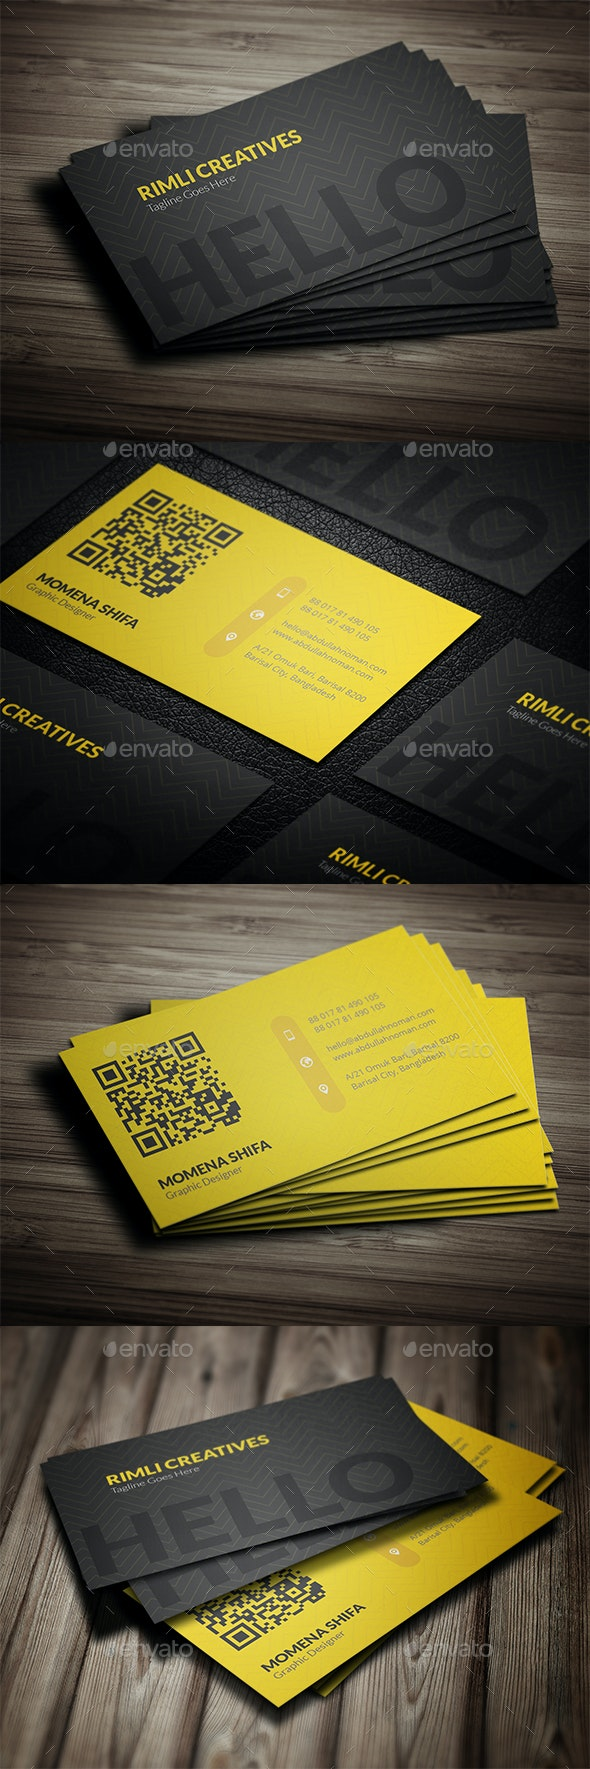 Sleek Business Card Design - Creative Business Cards